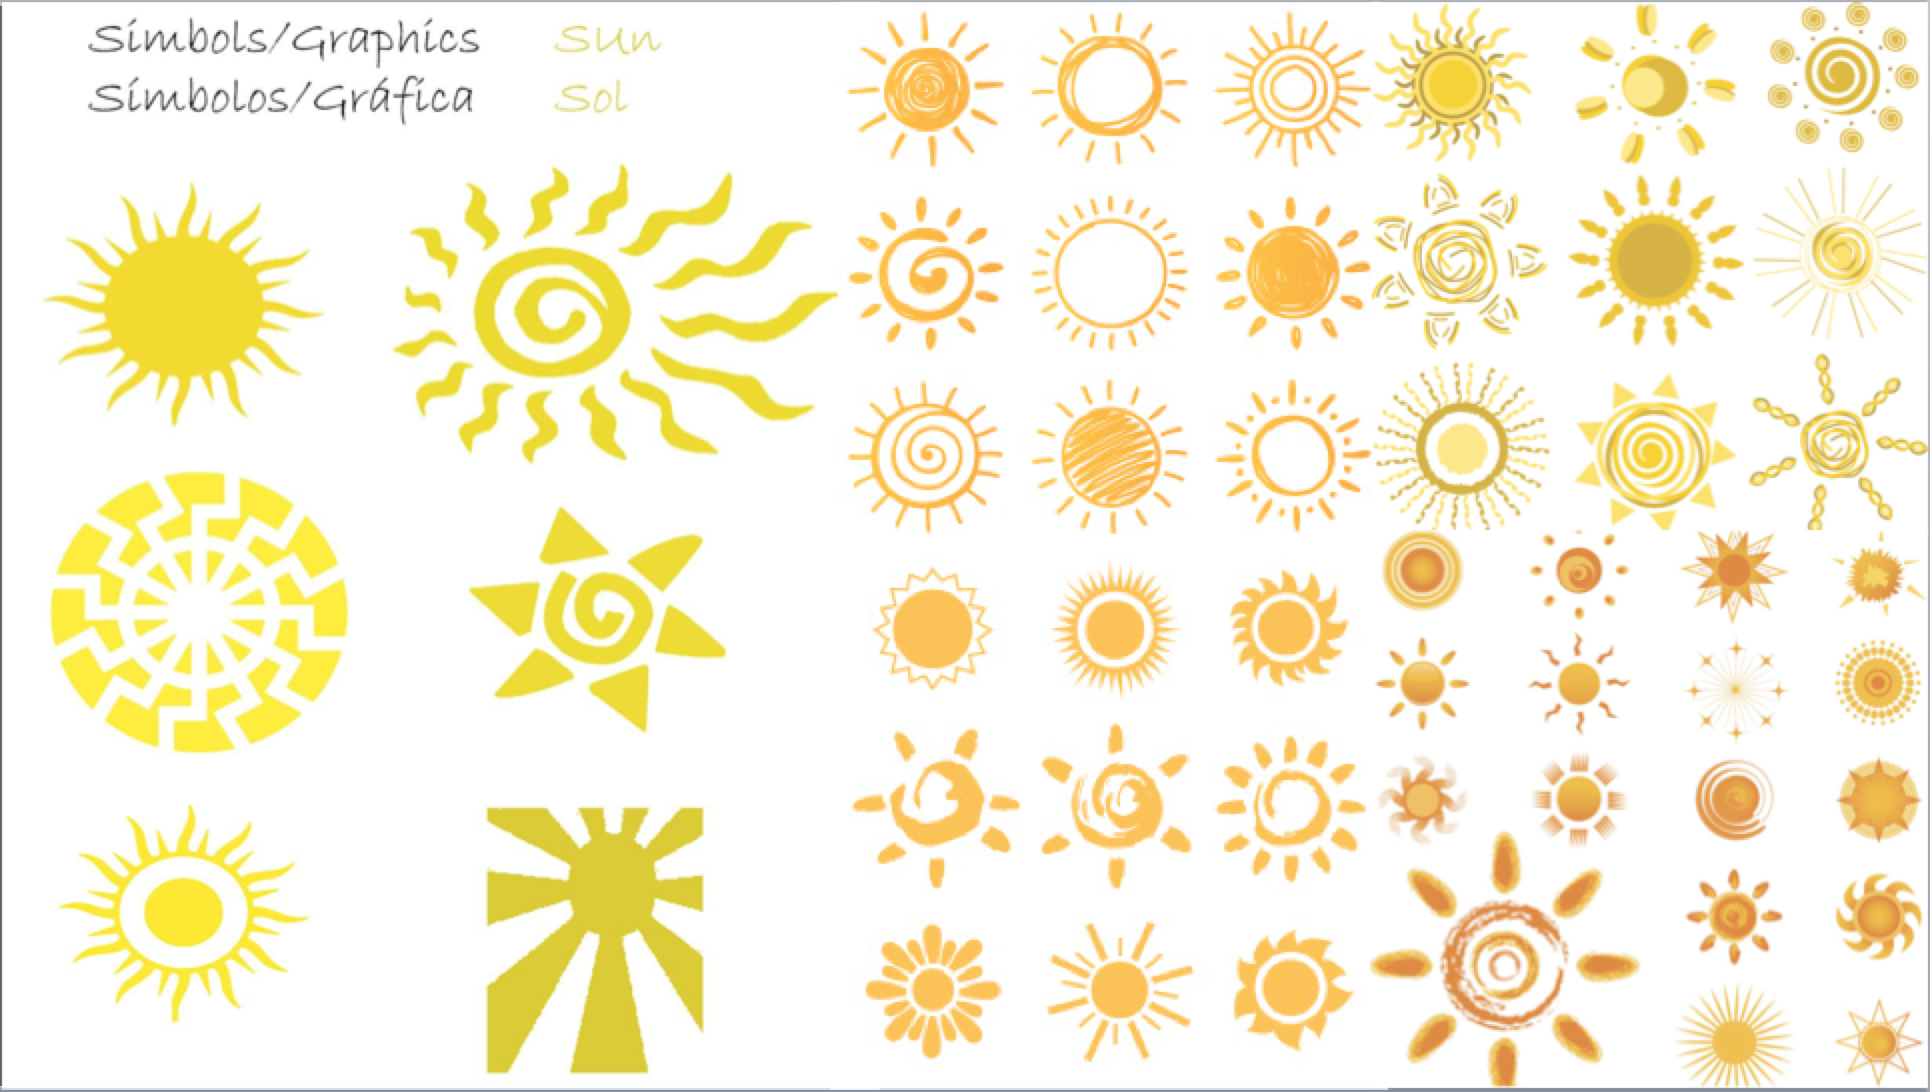 No two suns are alike, various illustrations to exemplify the point.